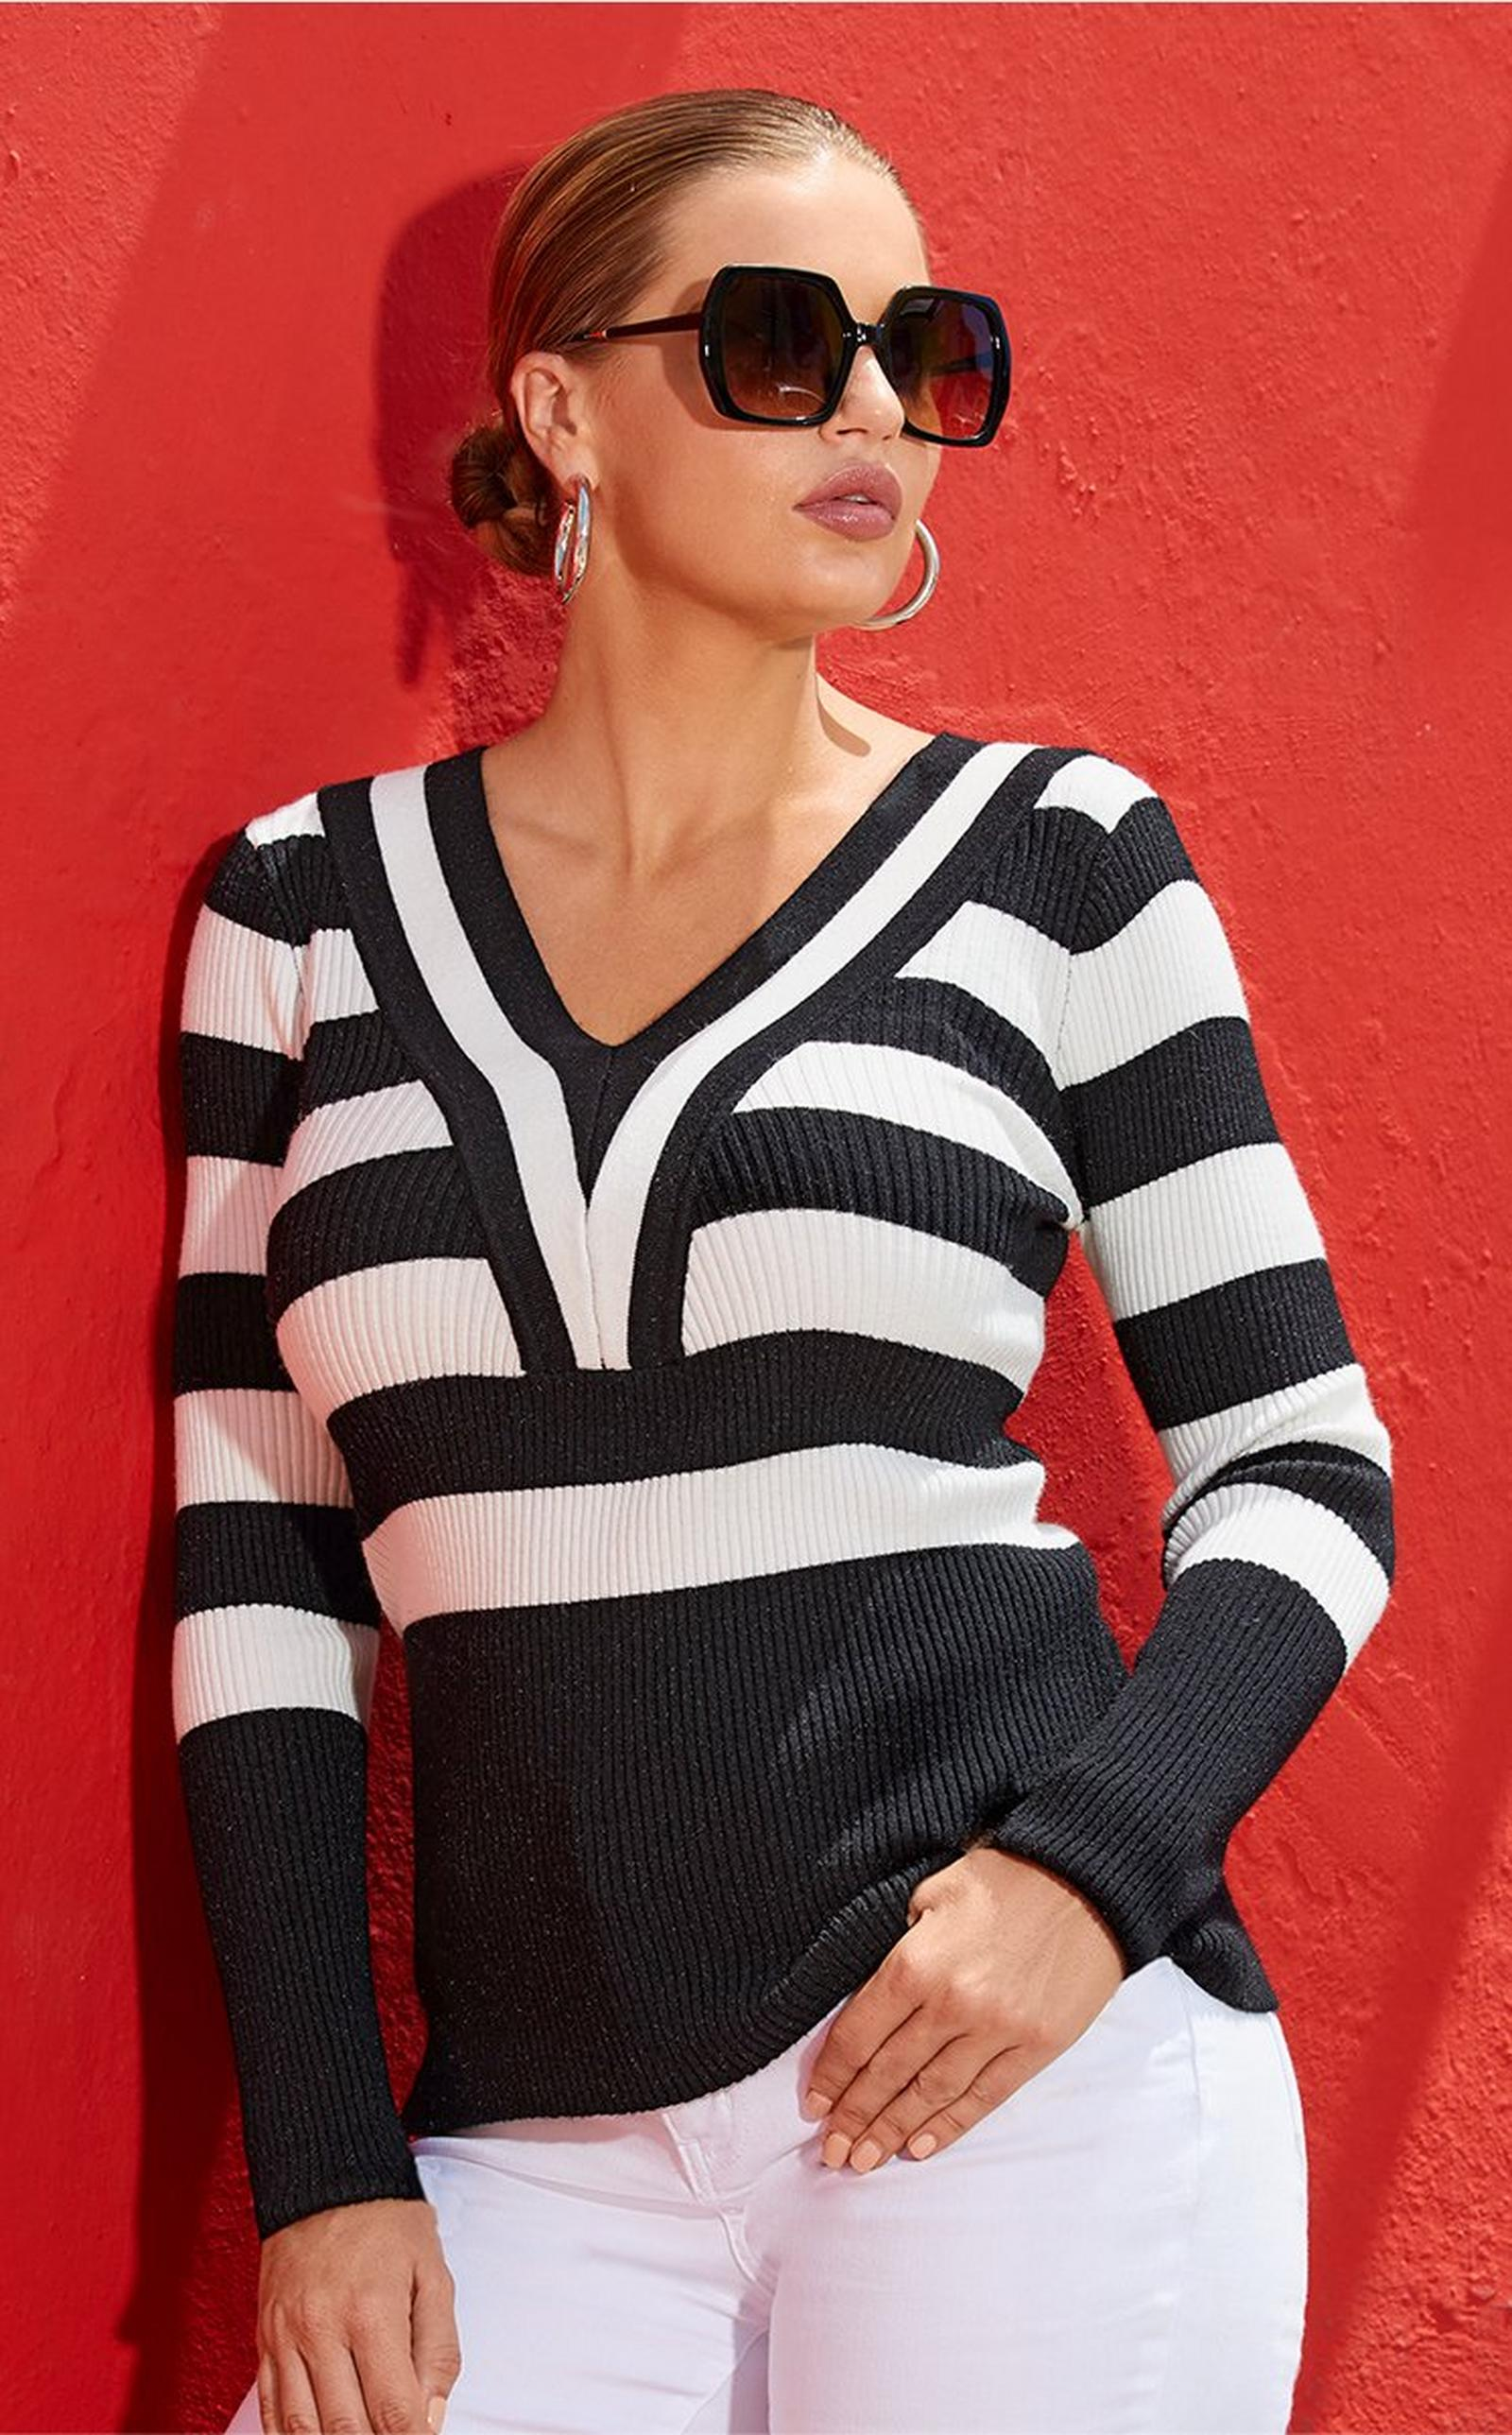 model leaning against a red wall wearing a black and white striped sweater, white jeans, and statement sunglasses.